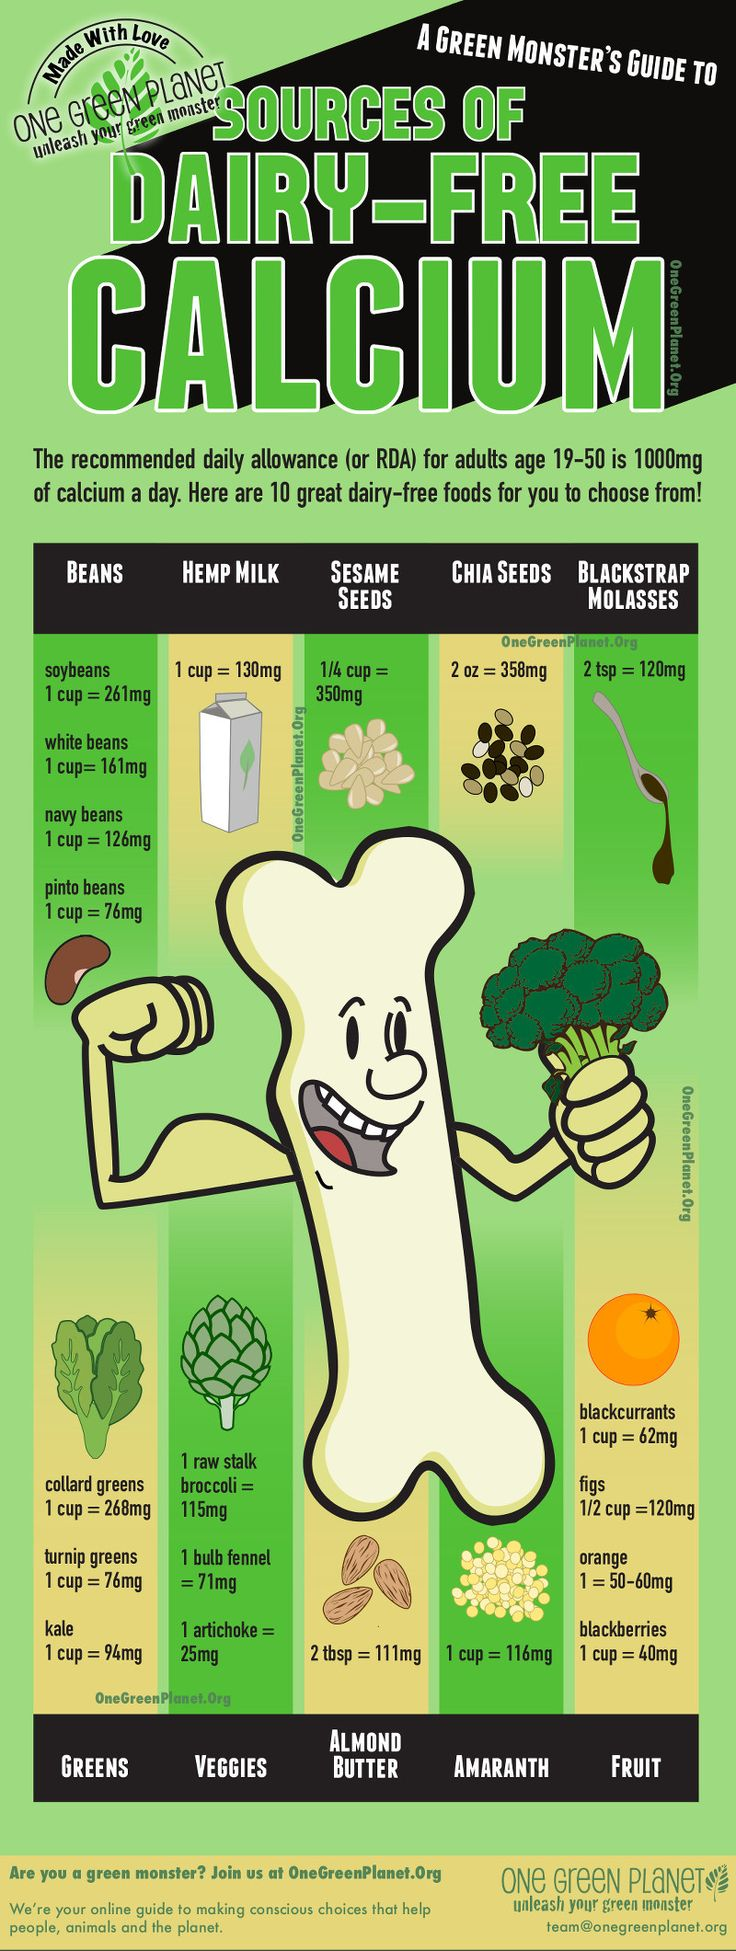 The Best Sources Of Dairy-Free Calcium (Infographic):